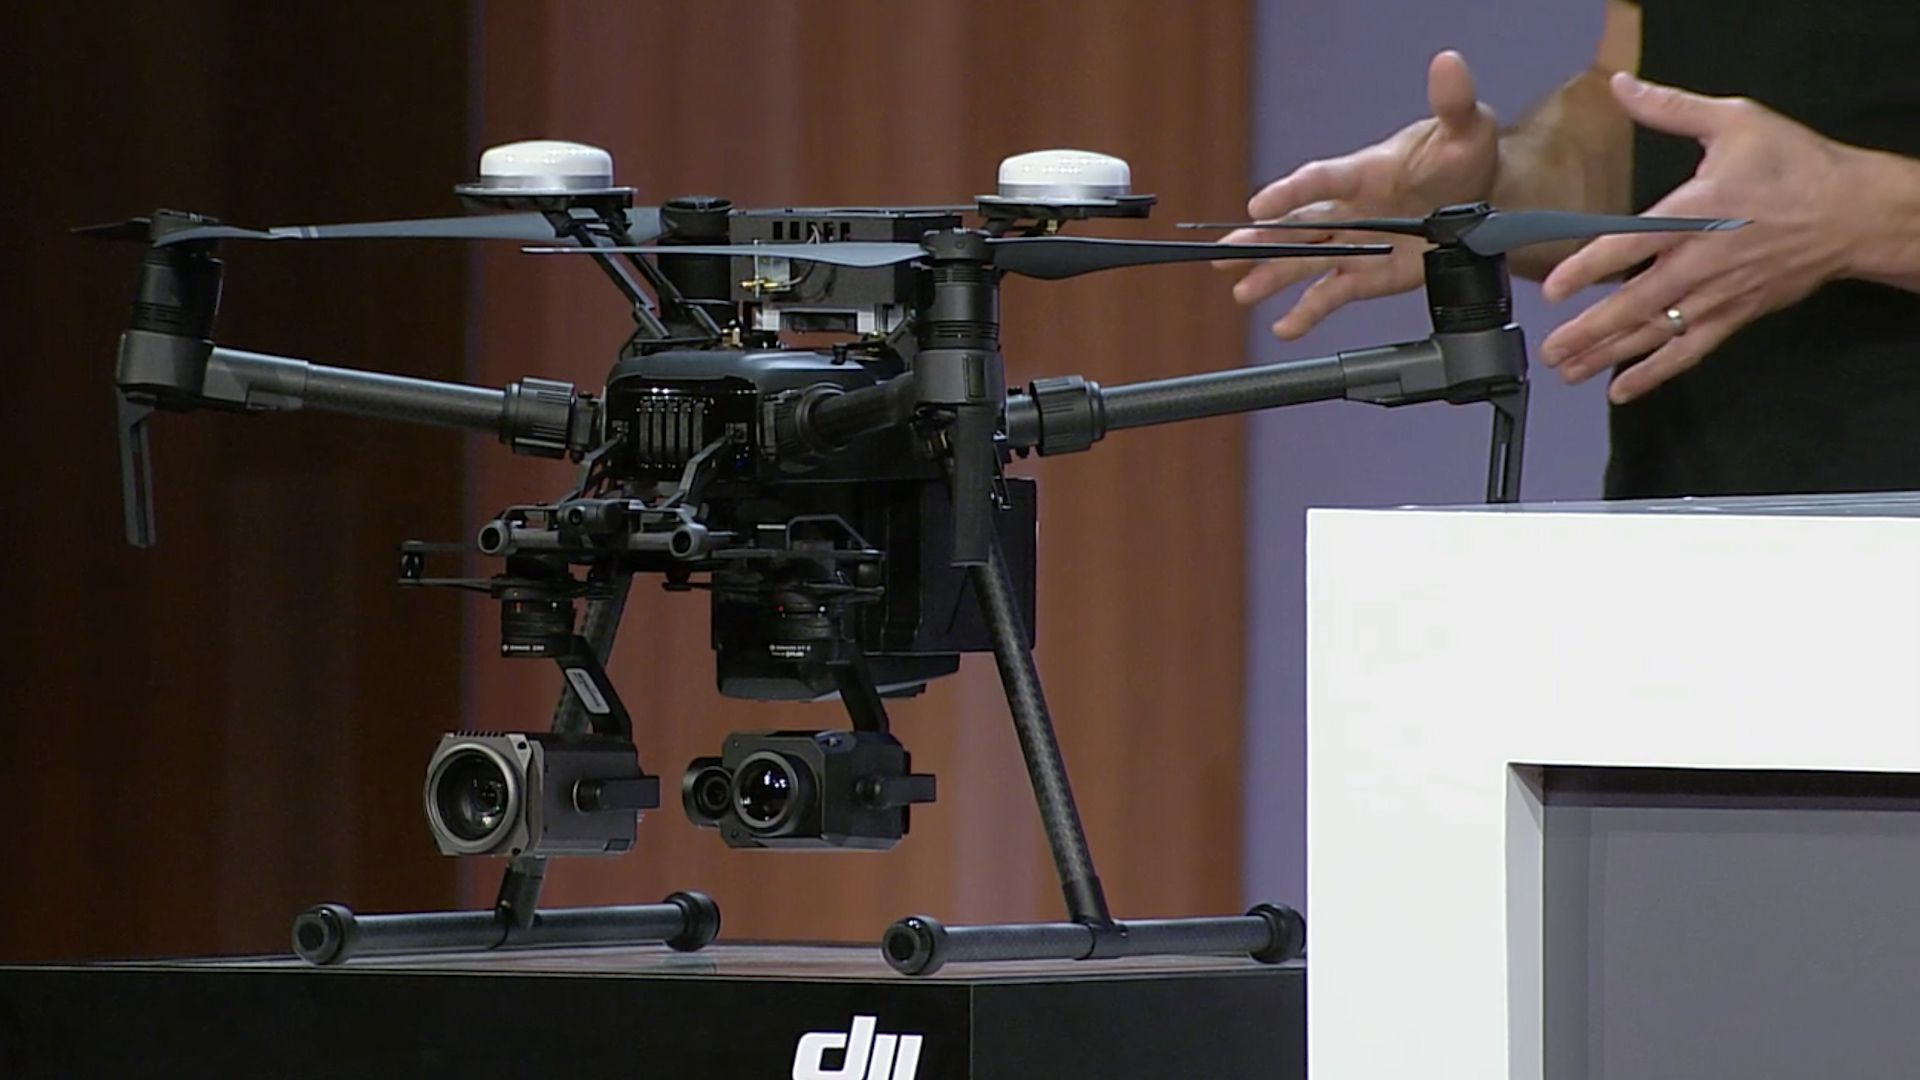 Microsoft partners with DJI on a new Windows 10 drone SDK - The Verge